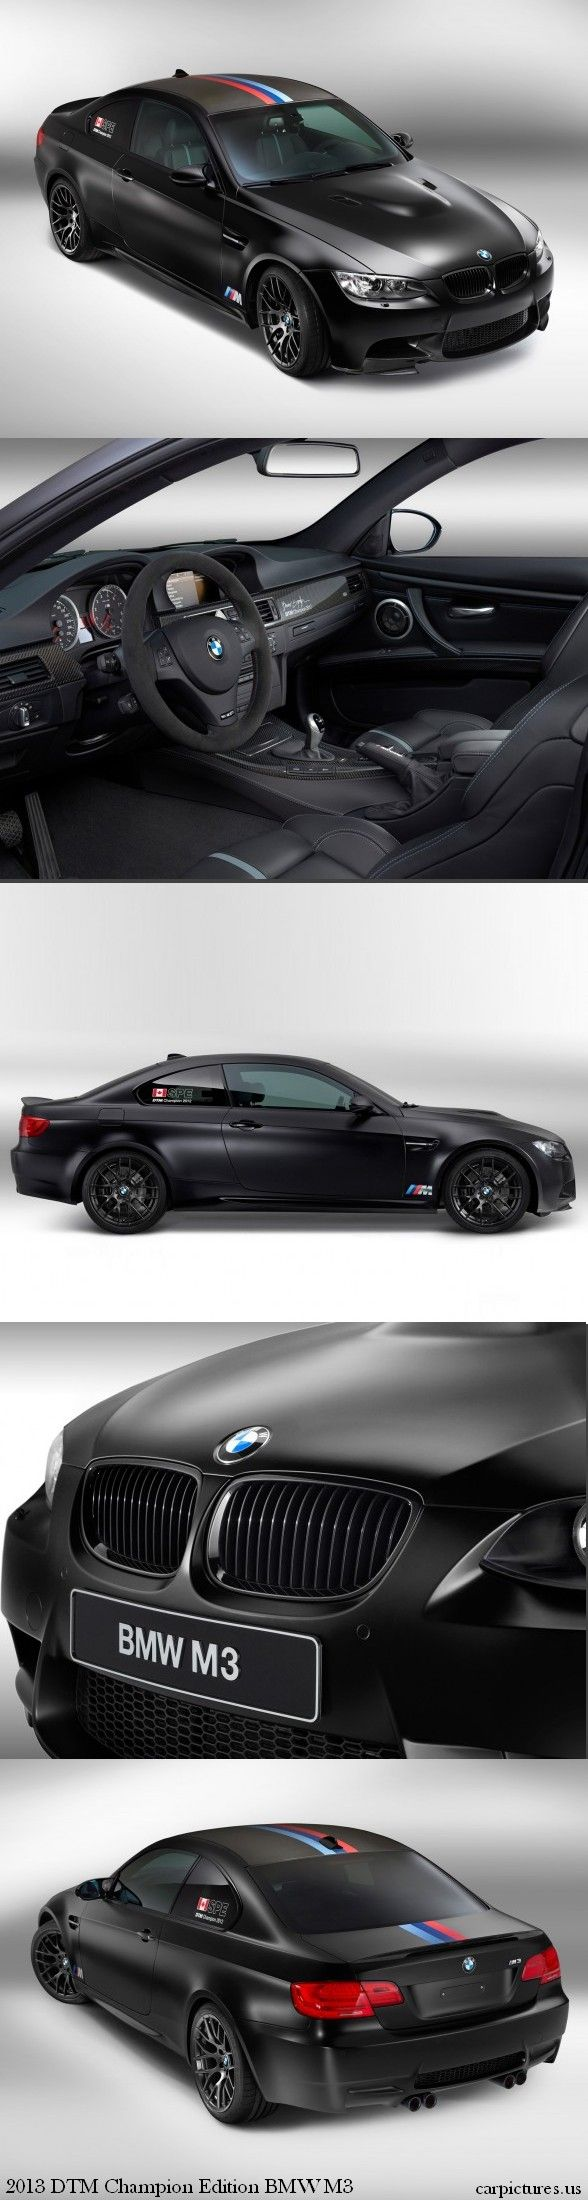 2013 DTM Champion Edition BMW M3 ✏✏✏✏✏✏✏✏✏✏✏✏✏✏✏✏ IDEE CADEAU / CUTE GIFT IDEA  ☞ http://gabyfeeriefr.tumblr.com/archive ✏✏✏✏✏✏✏✏✏✏✏✏✏✏✏✏